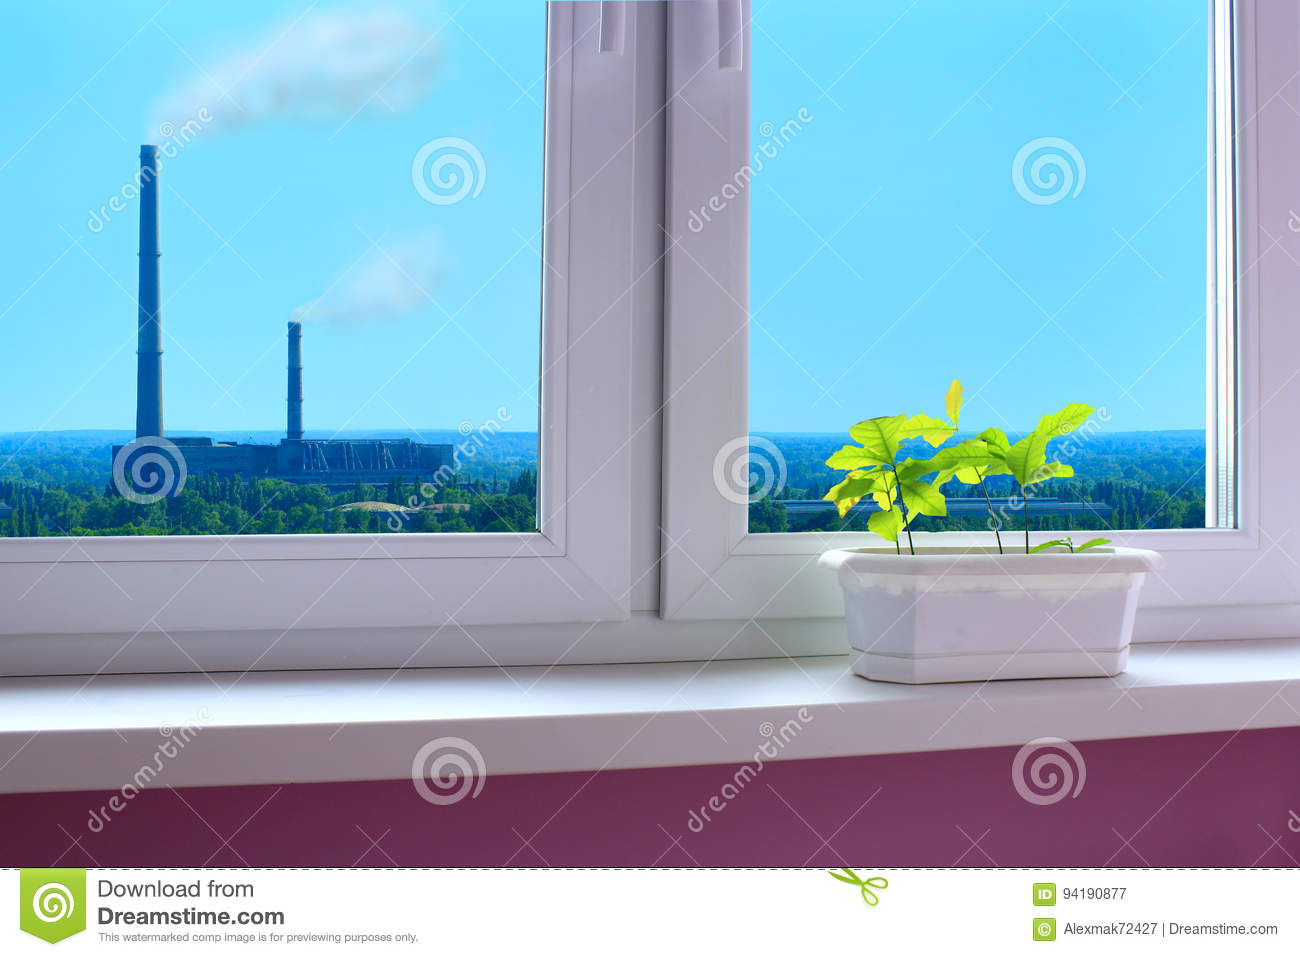 Young plants of oaks on the window-sill and view to the pollution of environment by industry